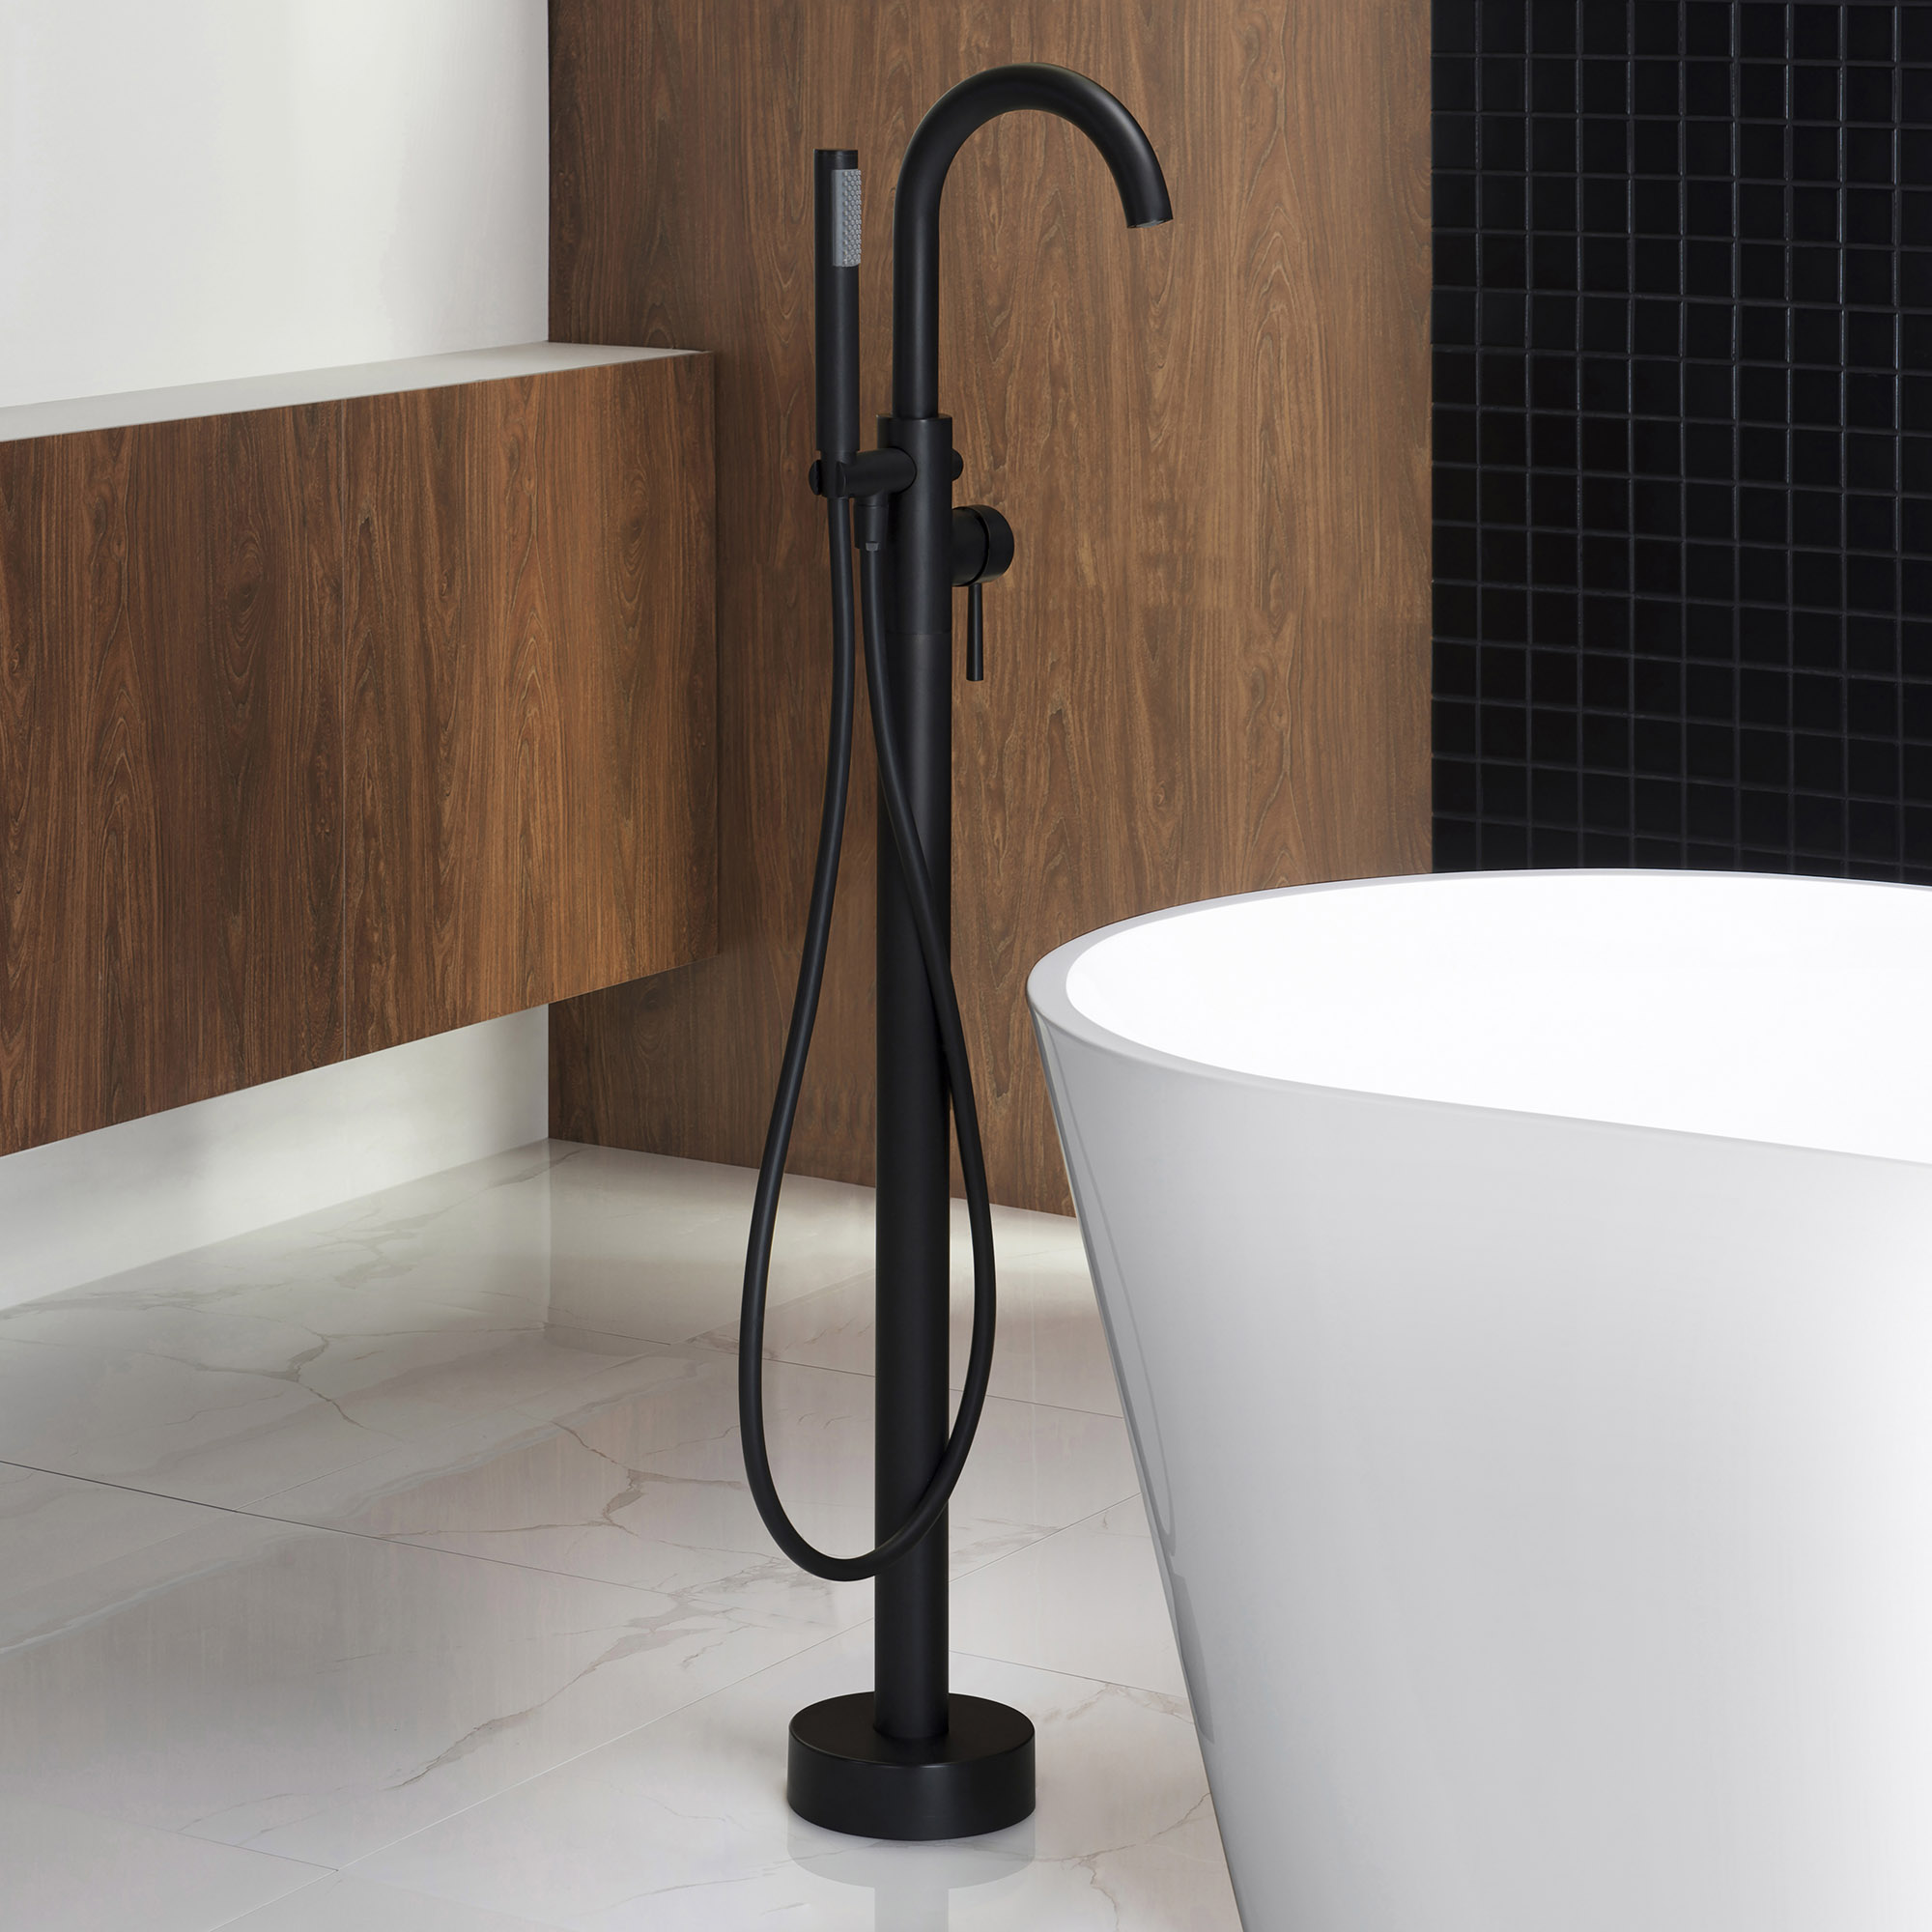 WOODBRIDGE Freestanding Tub Filler Bathtub Floor Mount Brass Bathroom Faucets with Hand Shower, F-0006 Matte Black